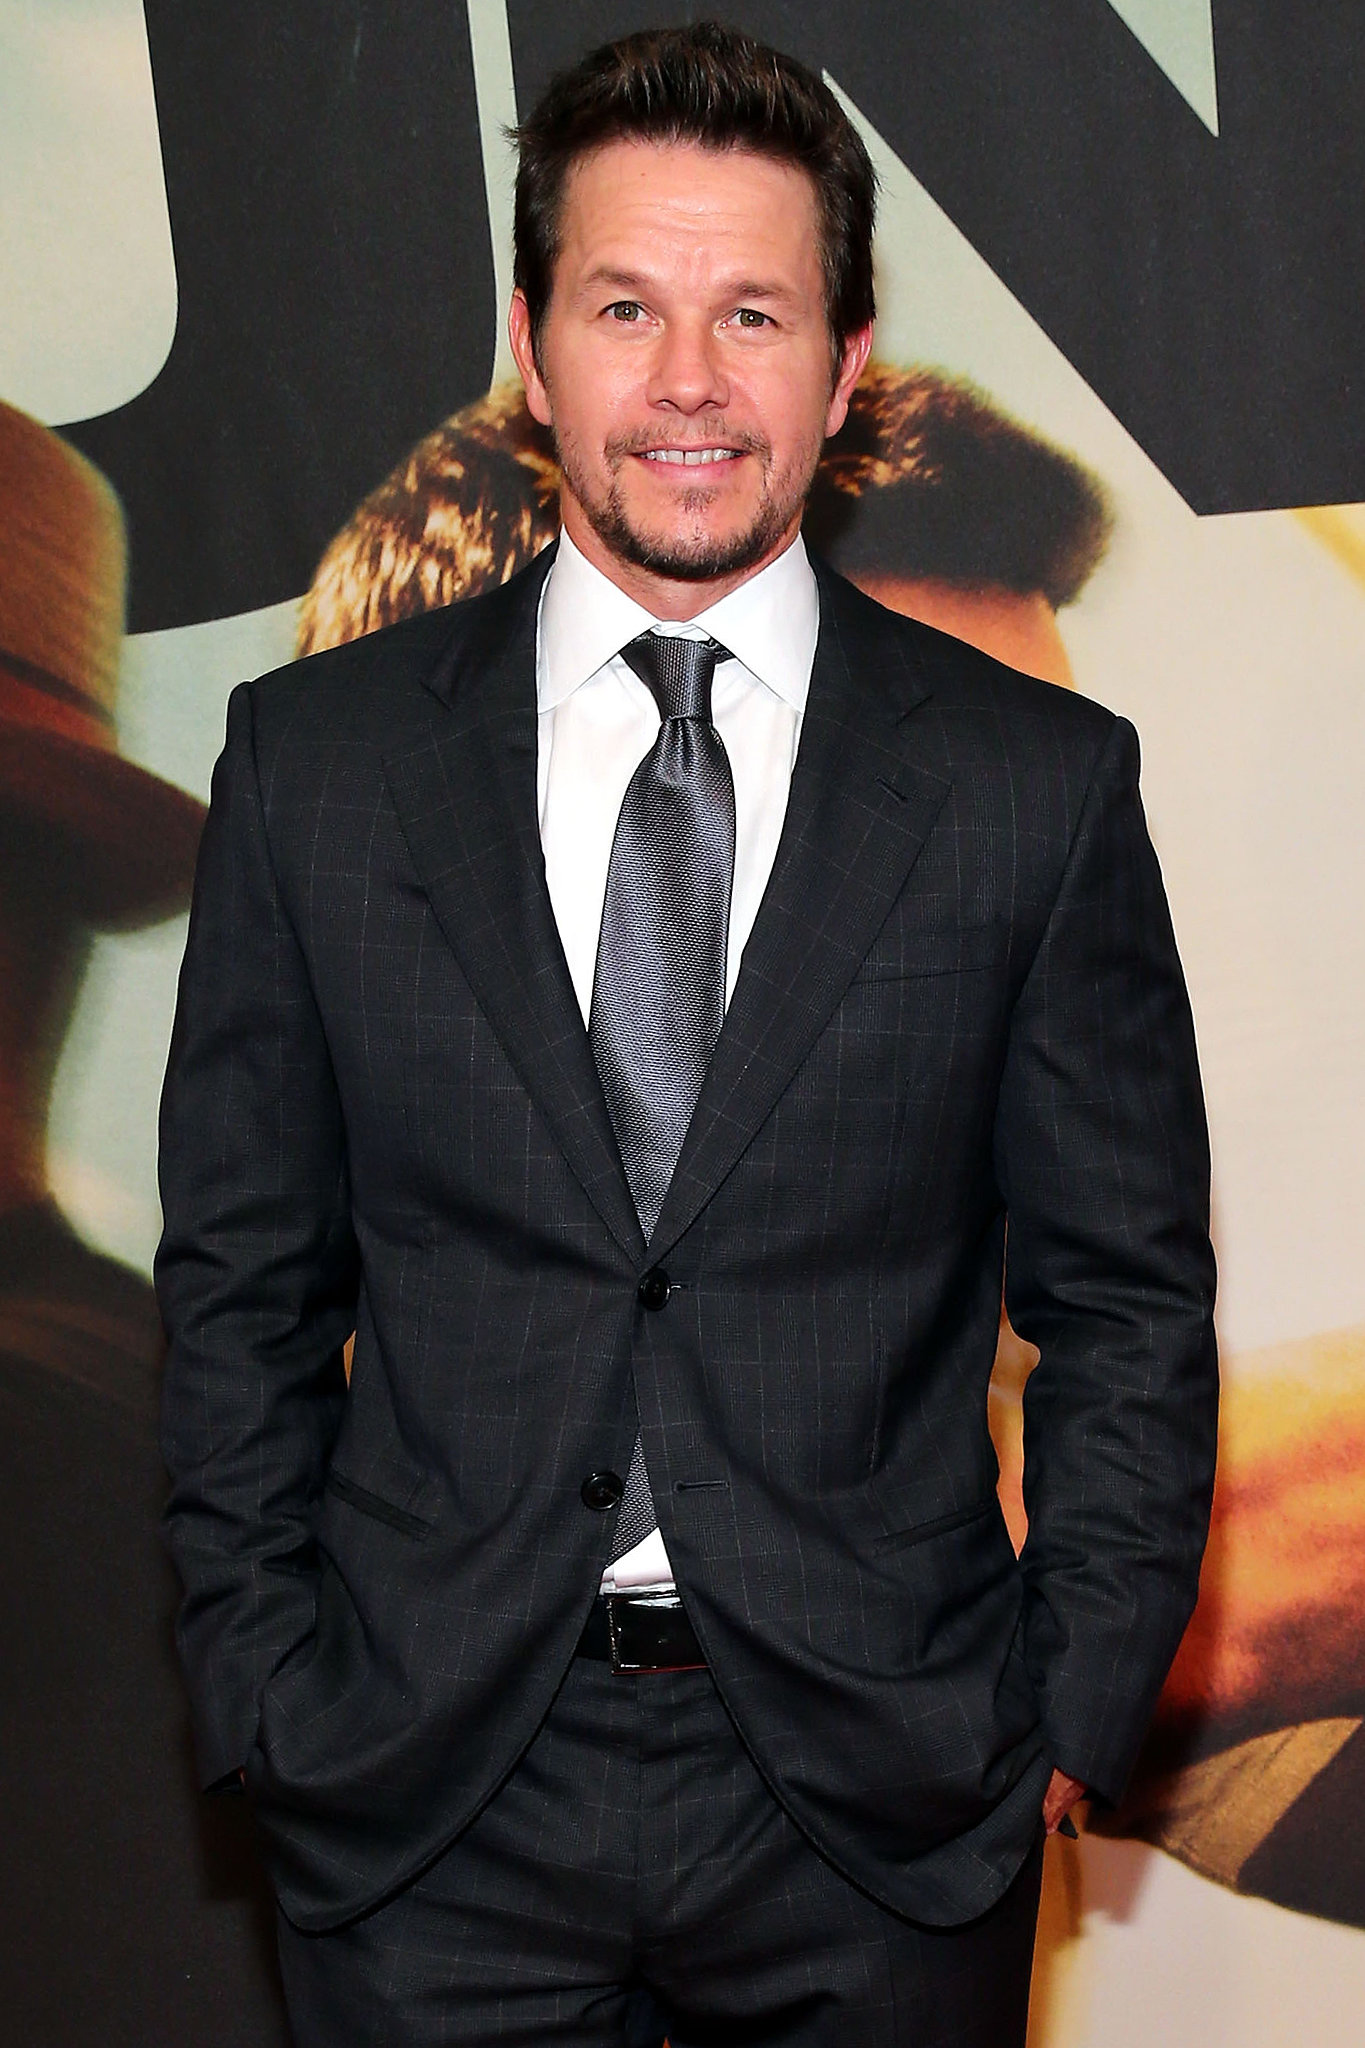 Mark Wahlberg may star in The Gambler, a remake of the 1974 film about a professor with a gambling problem. Wahlberg would replace Leonardo DiCaprio, who was originally set for the film.